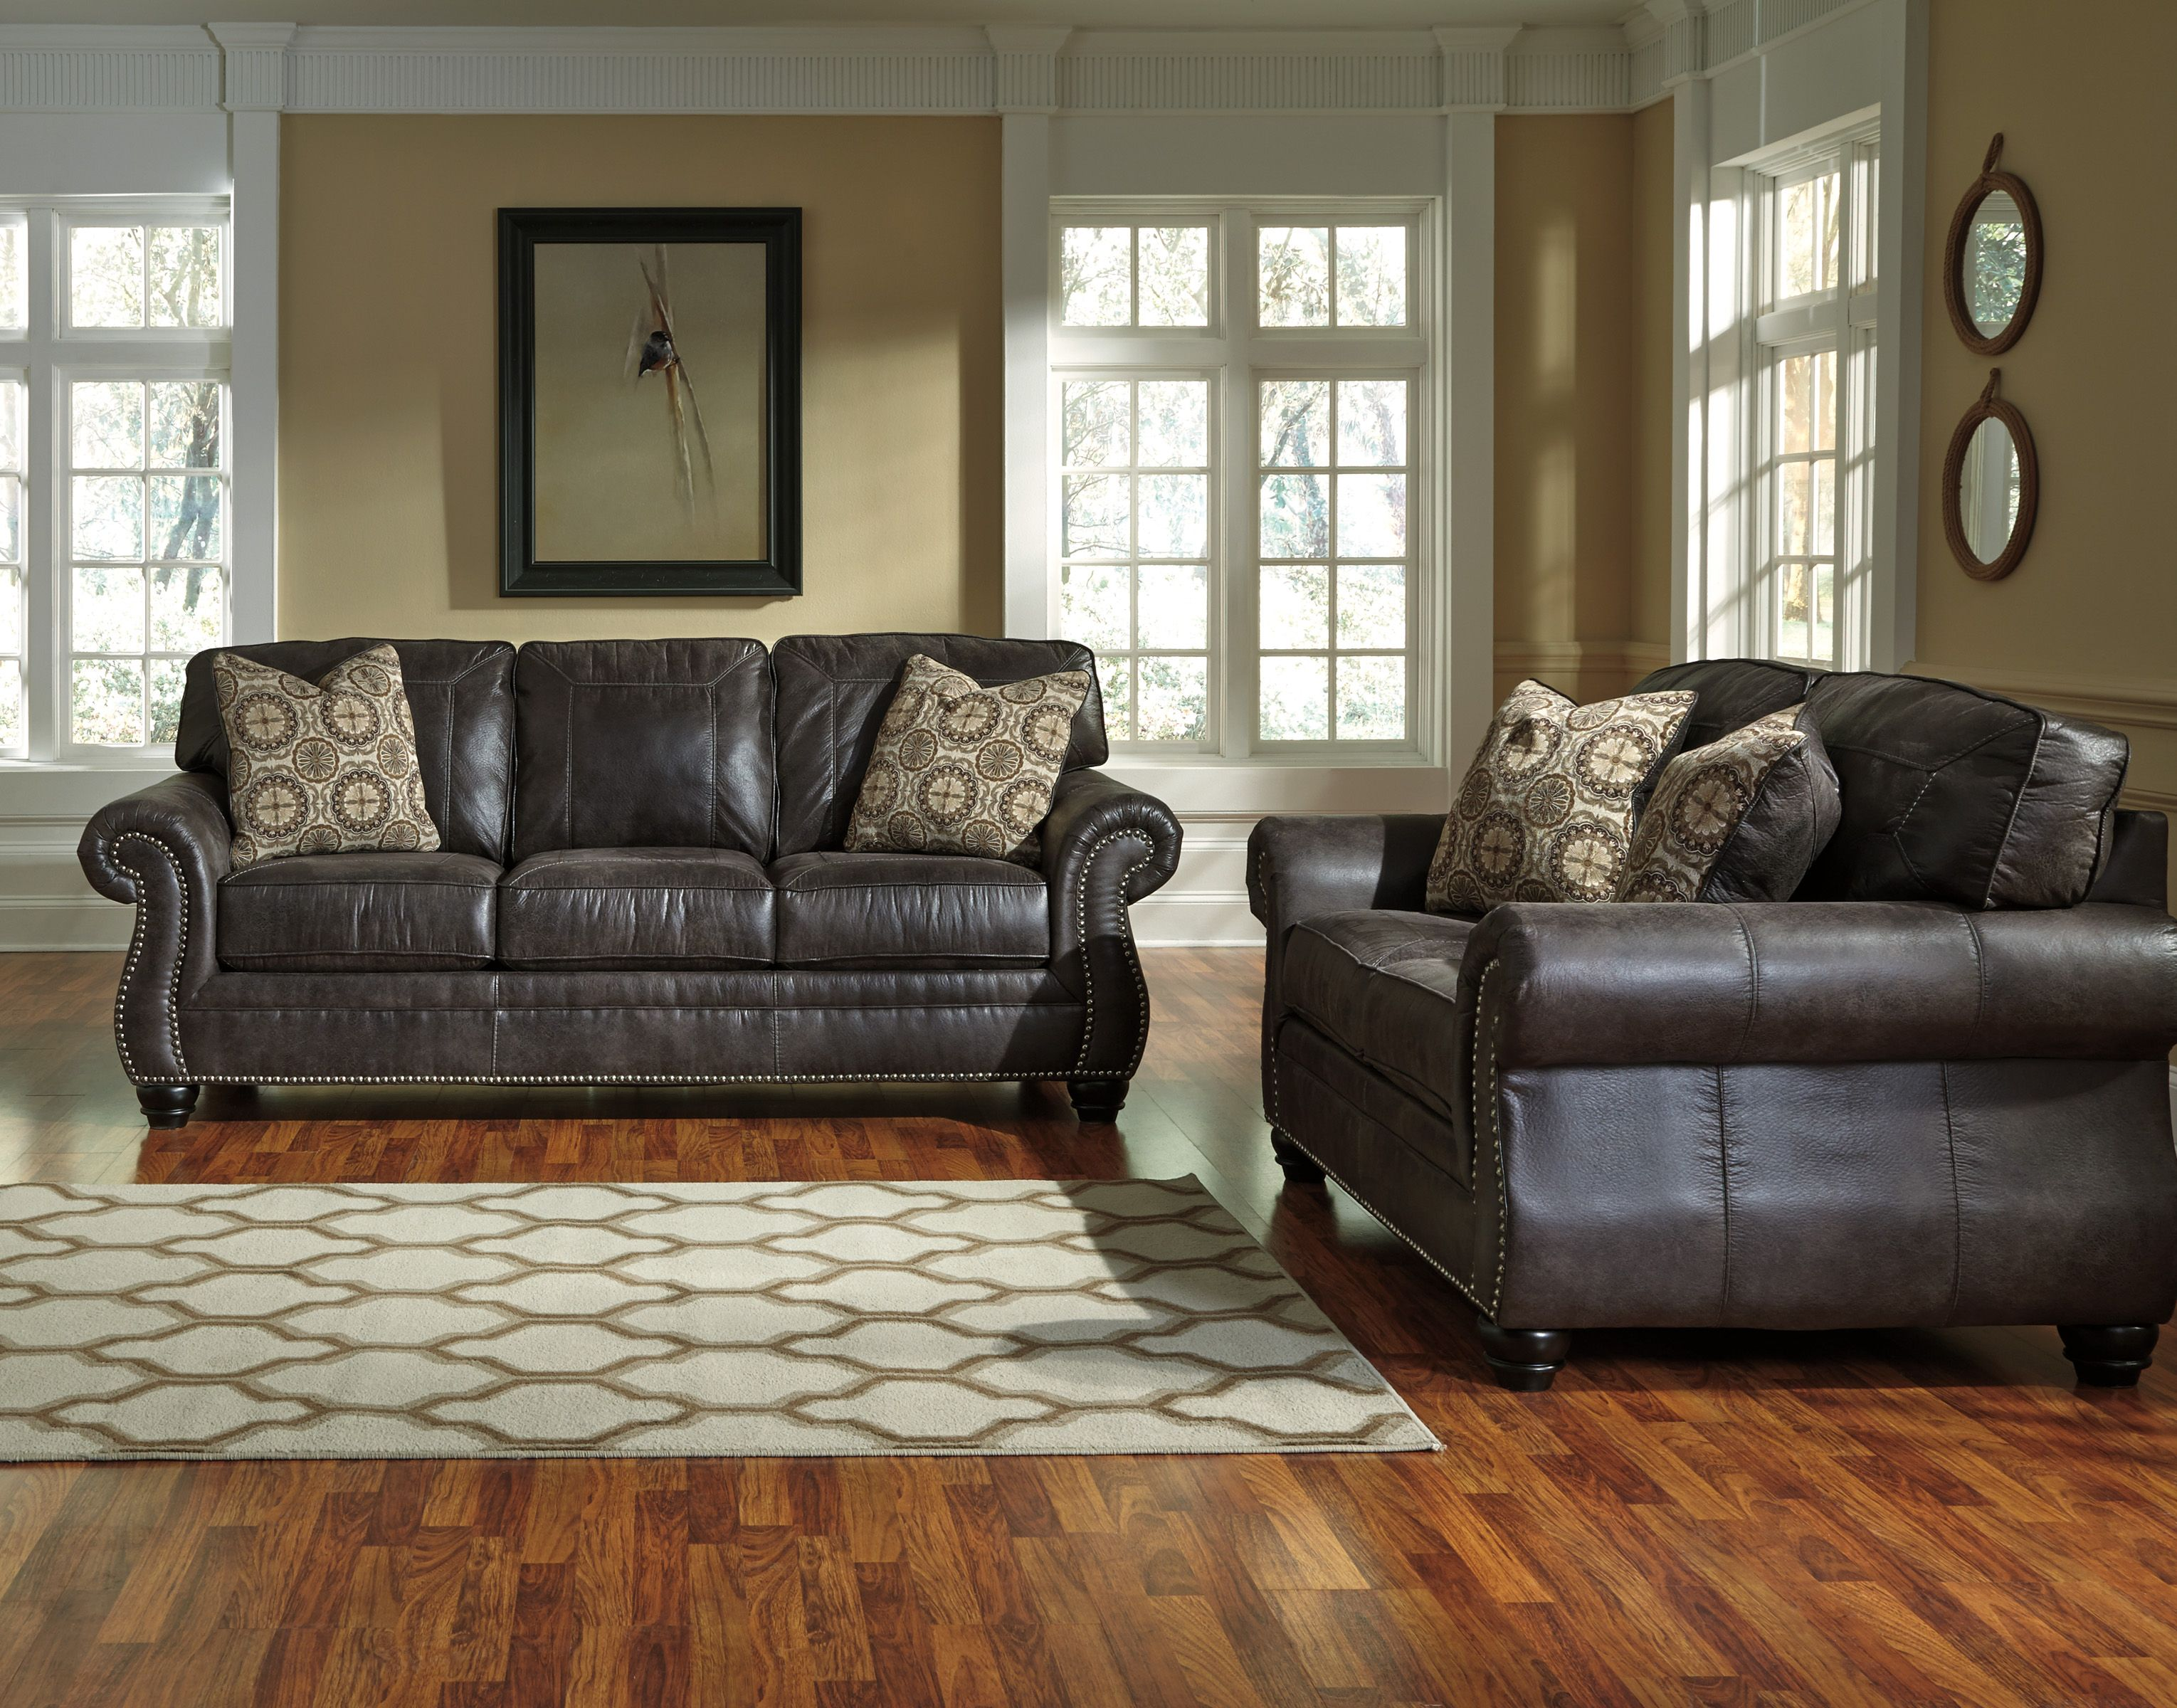 Our new Bay Shore sofa group gives the look of leather at an